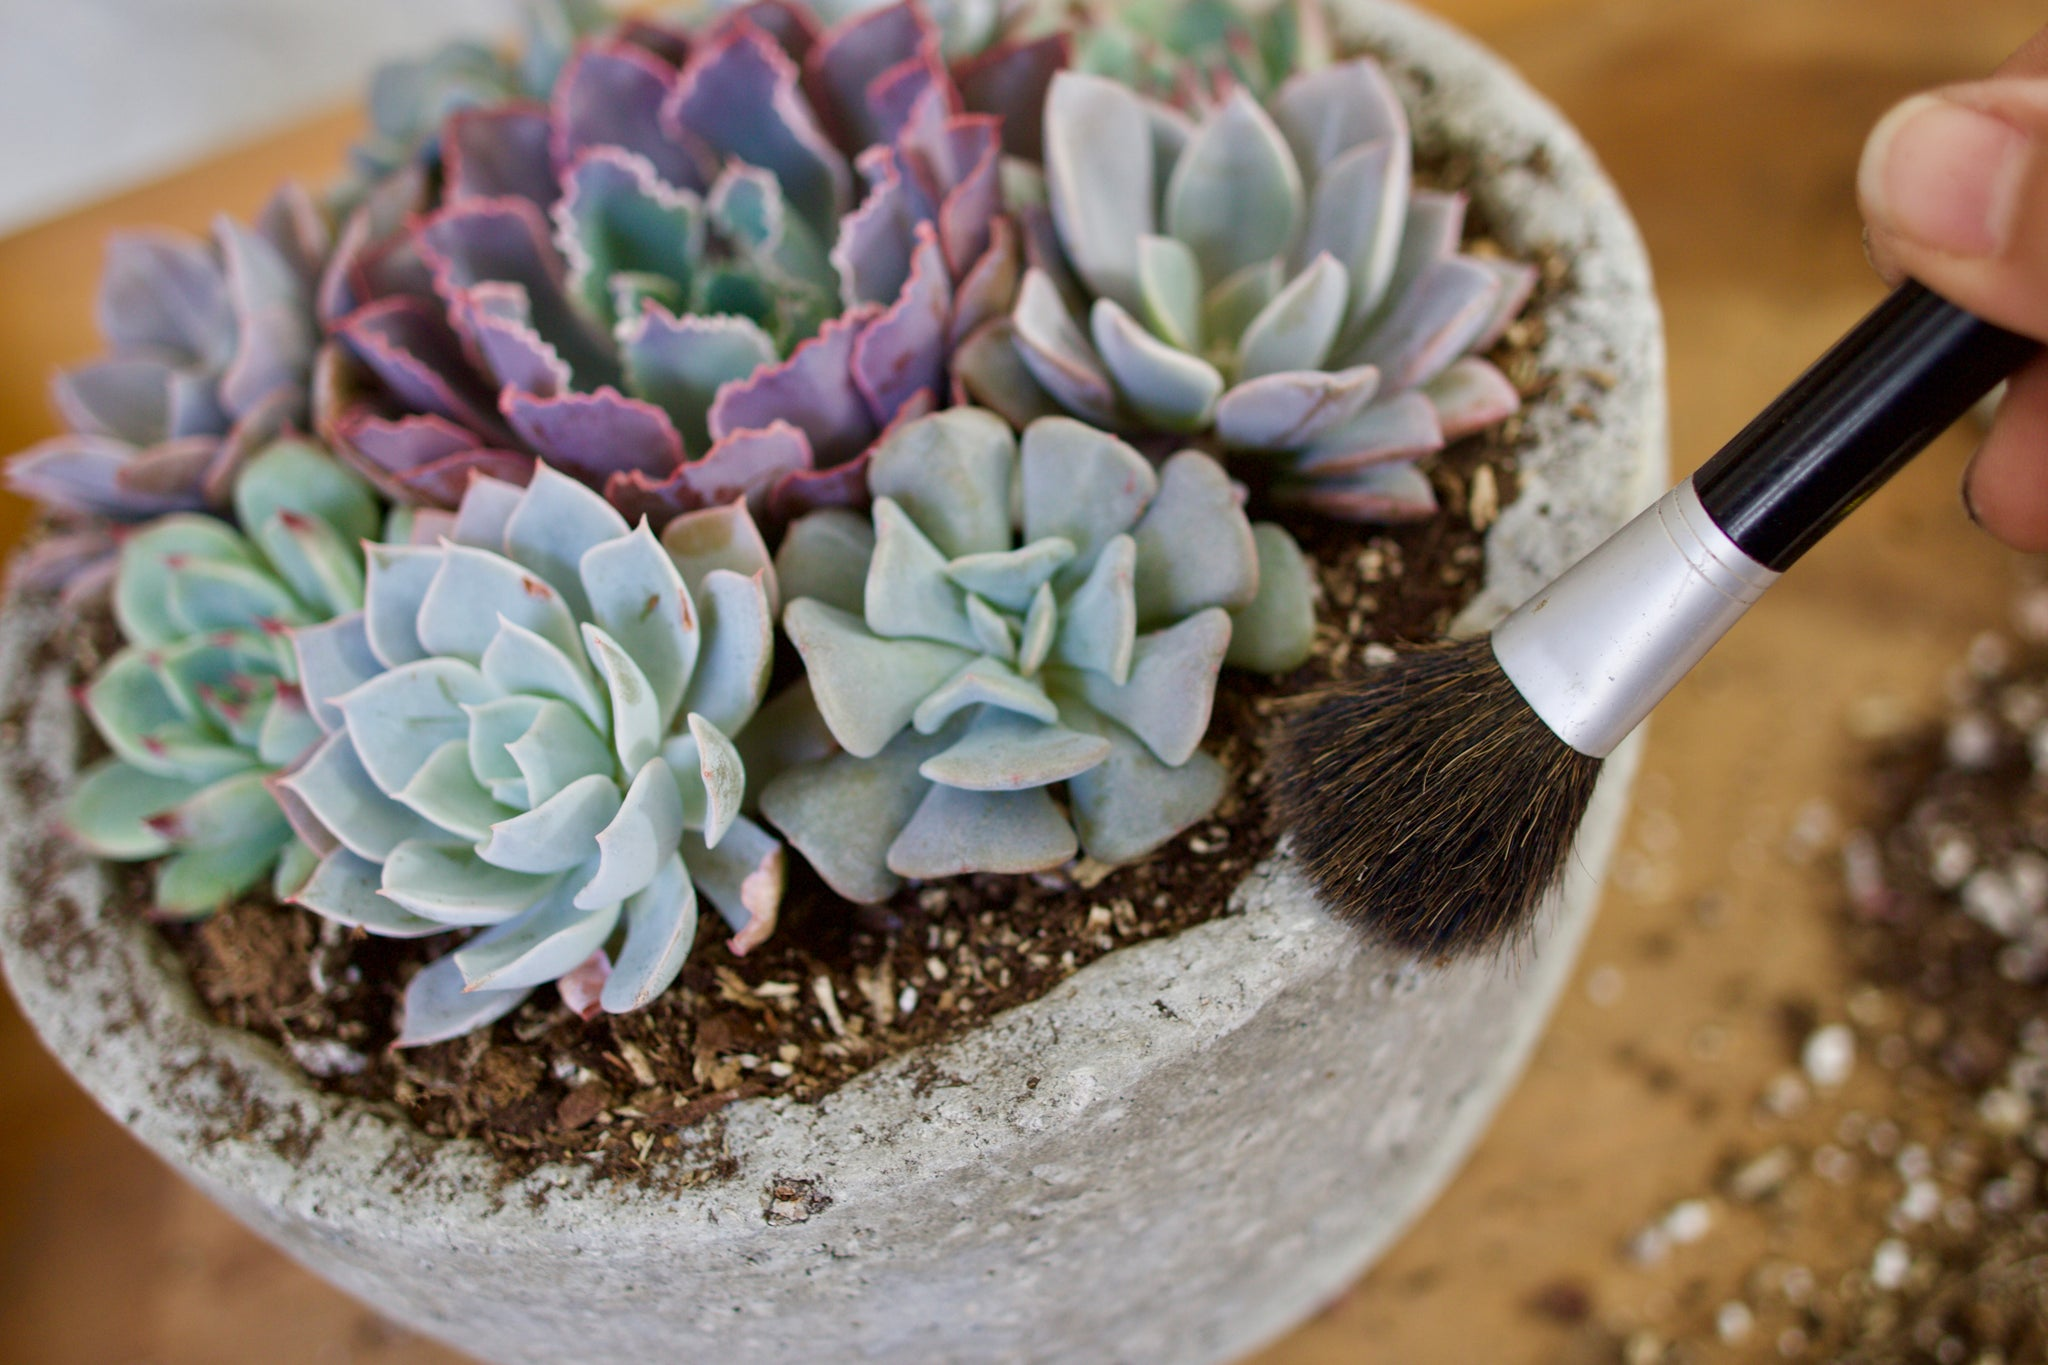 How To Arrange Succulents Succy Craft Style